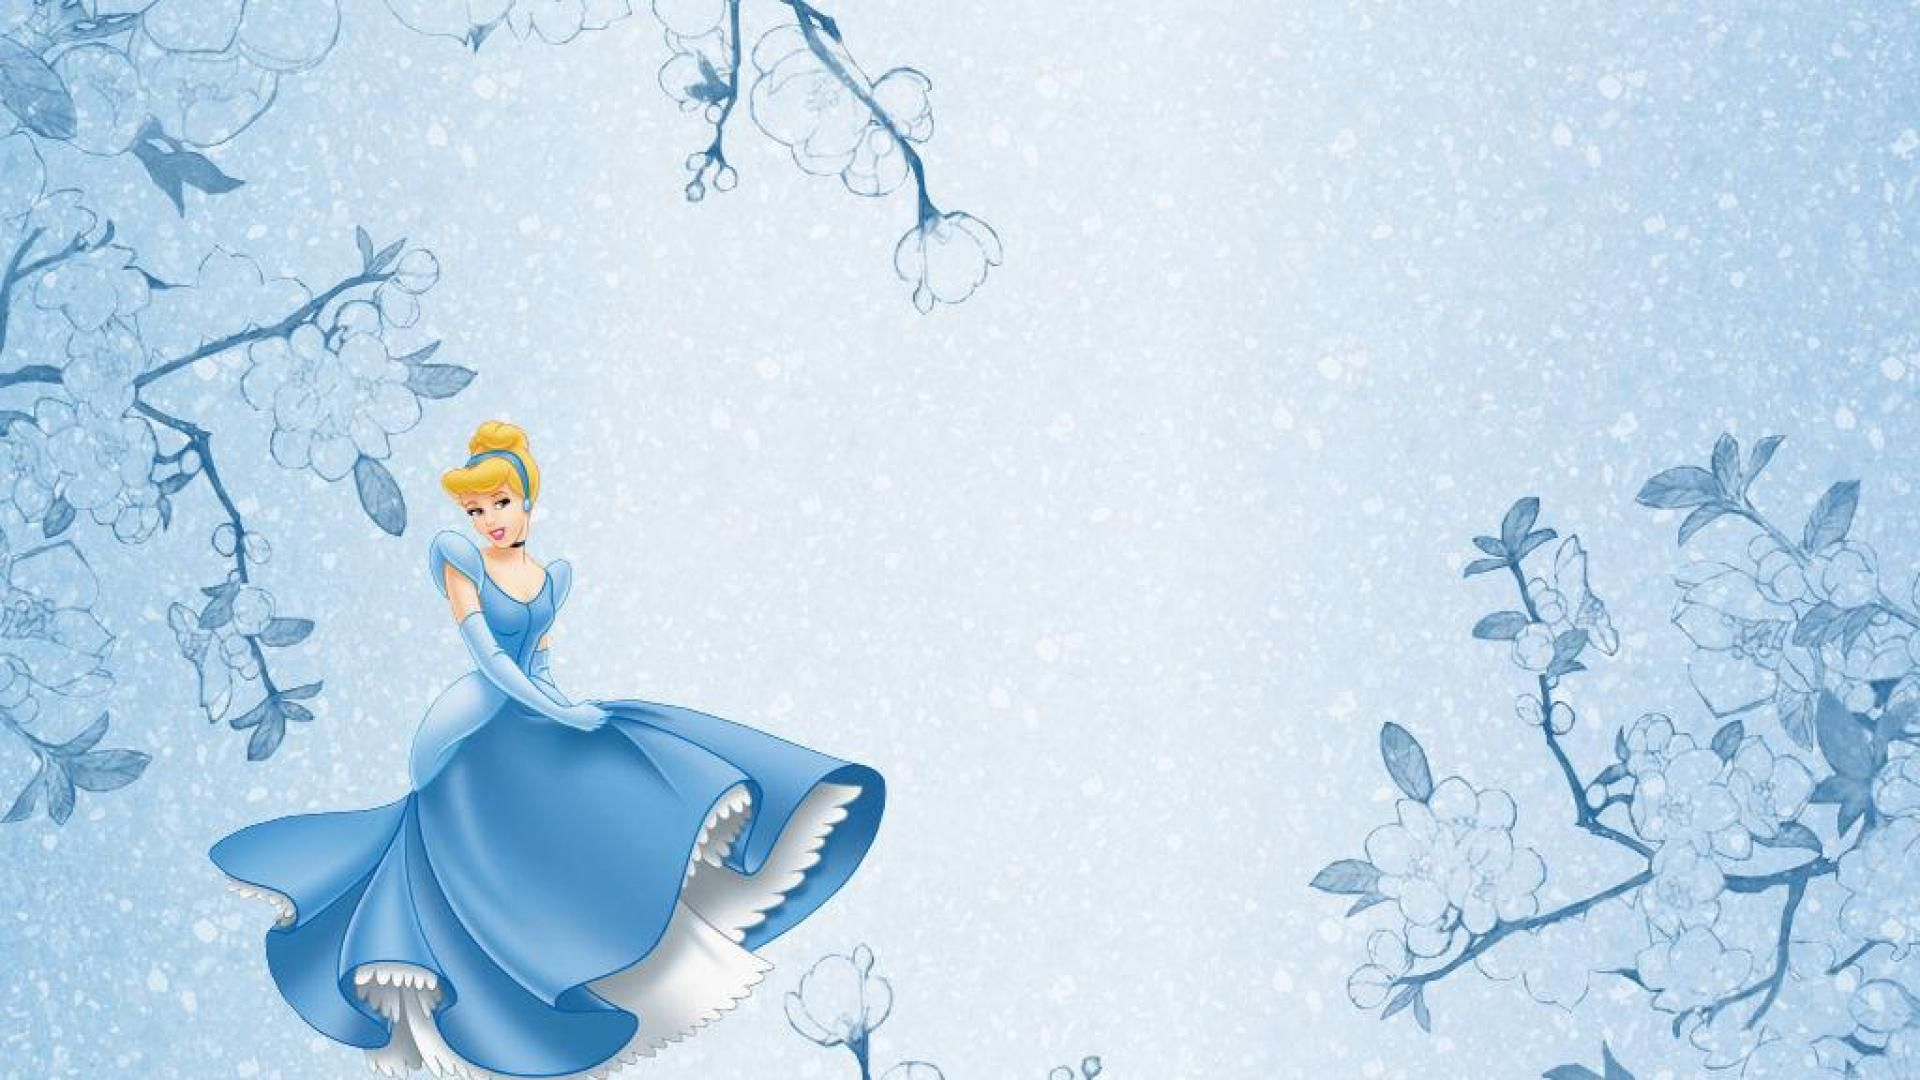 Cinderella wallpapers best wallpapers disney pinterest cinderella wallpaper thecheapjerseys Image collections